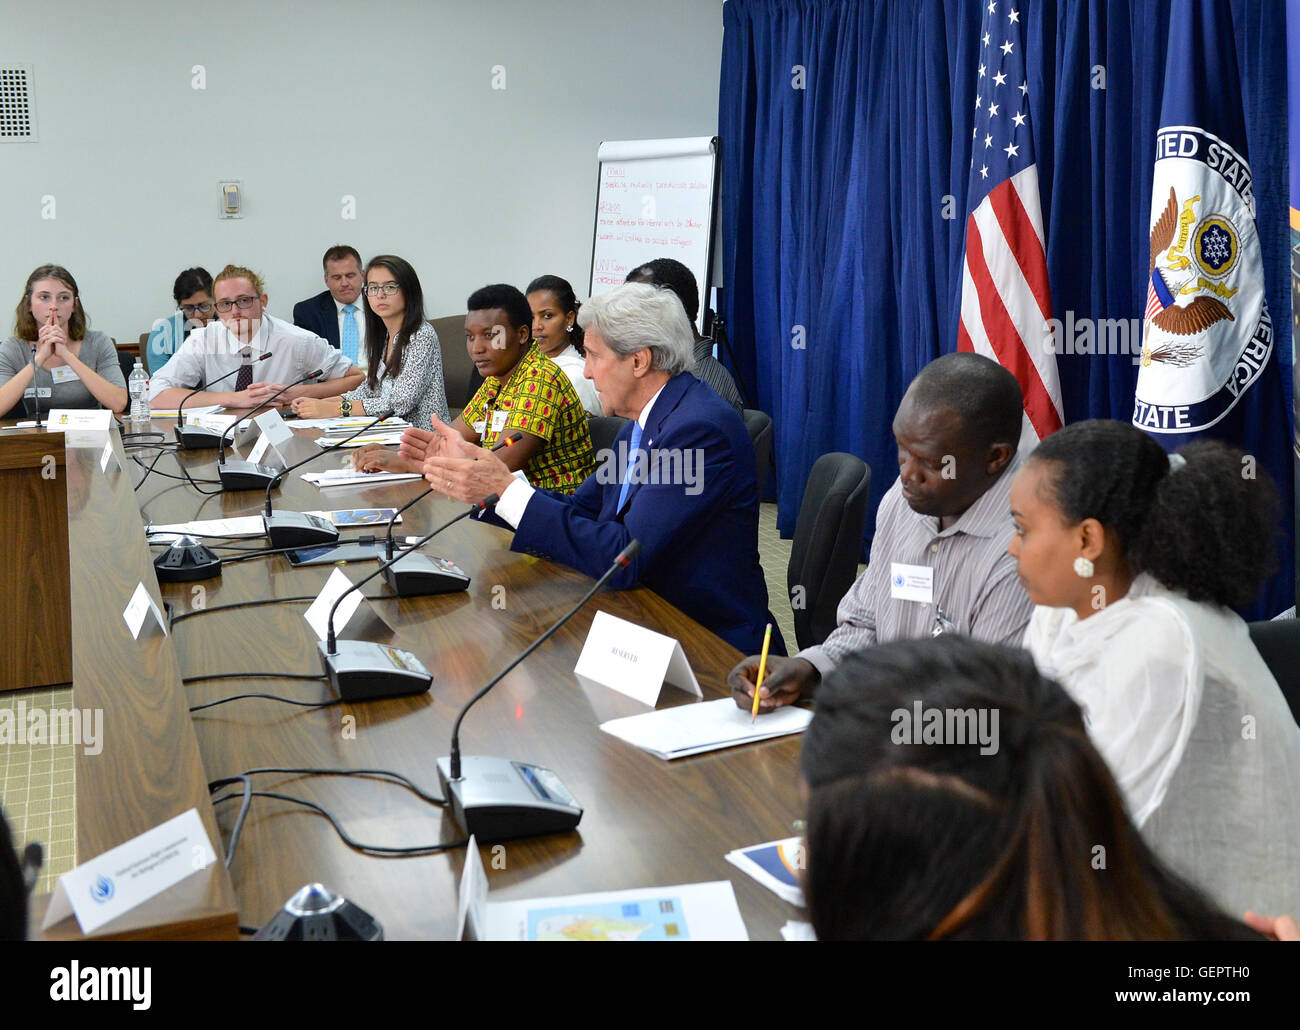 Secretary Kerry Delivers Remarks at the U.S. Diplomacy Center's Diplomatic Simulation for World Refugee Day - Stock Image